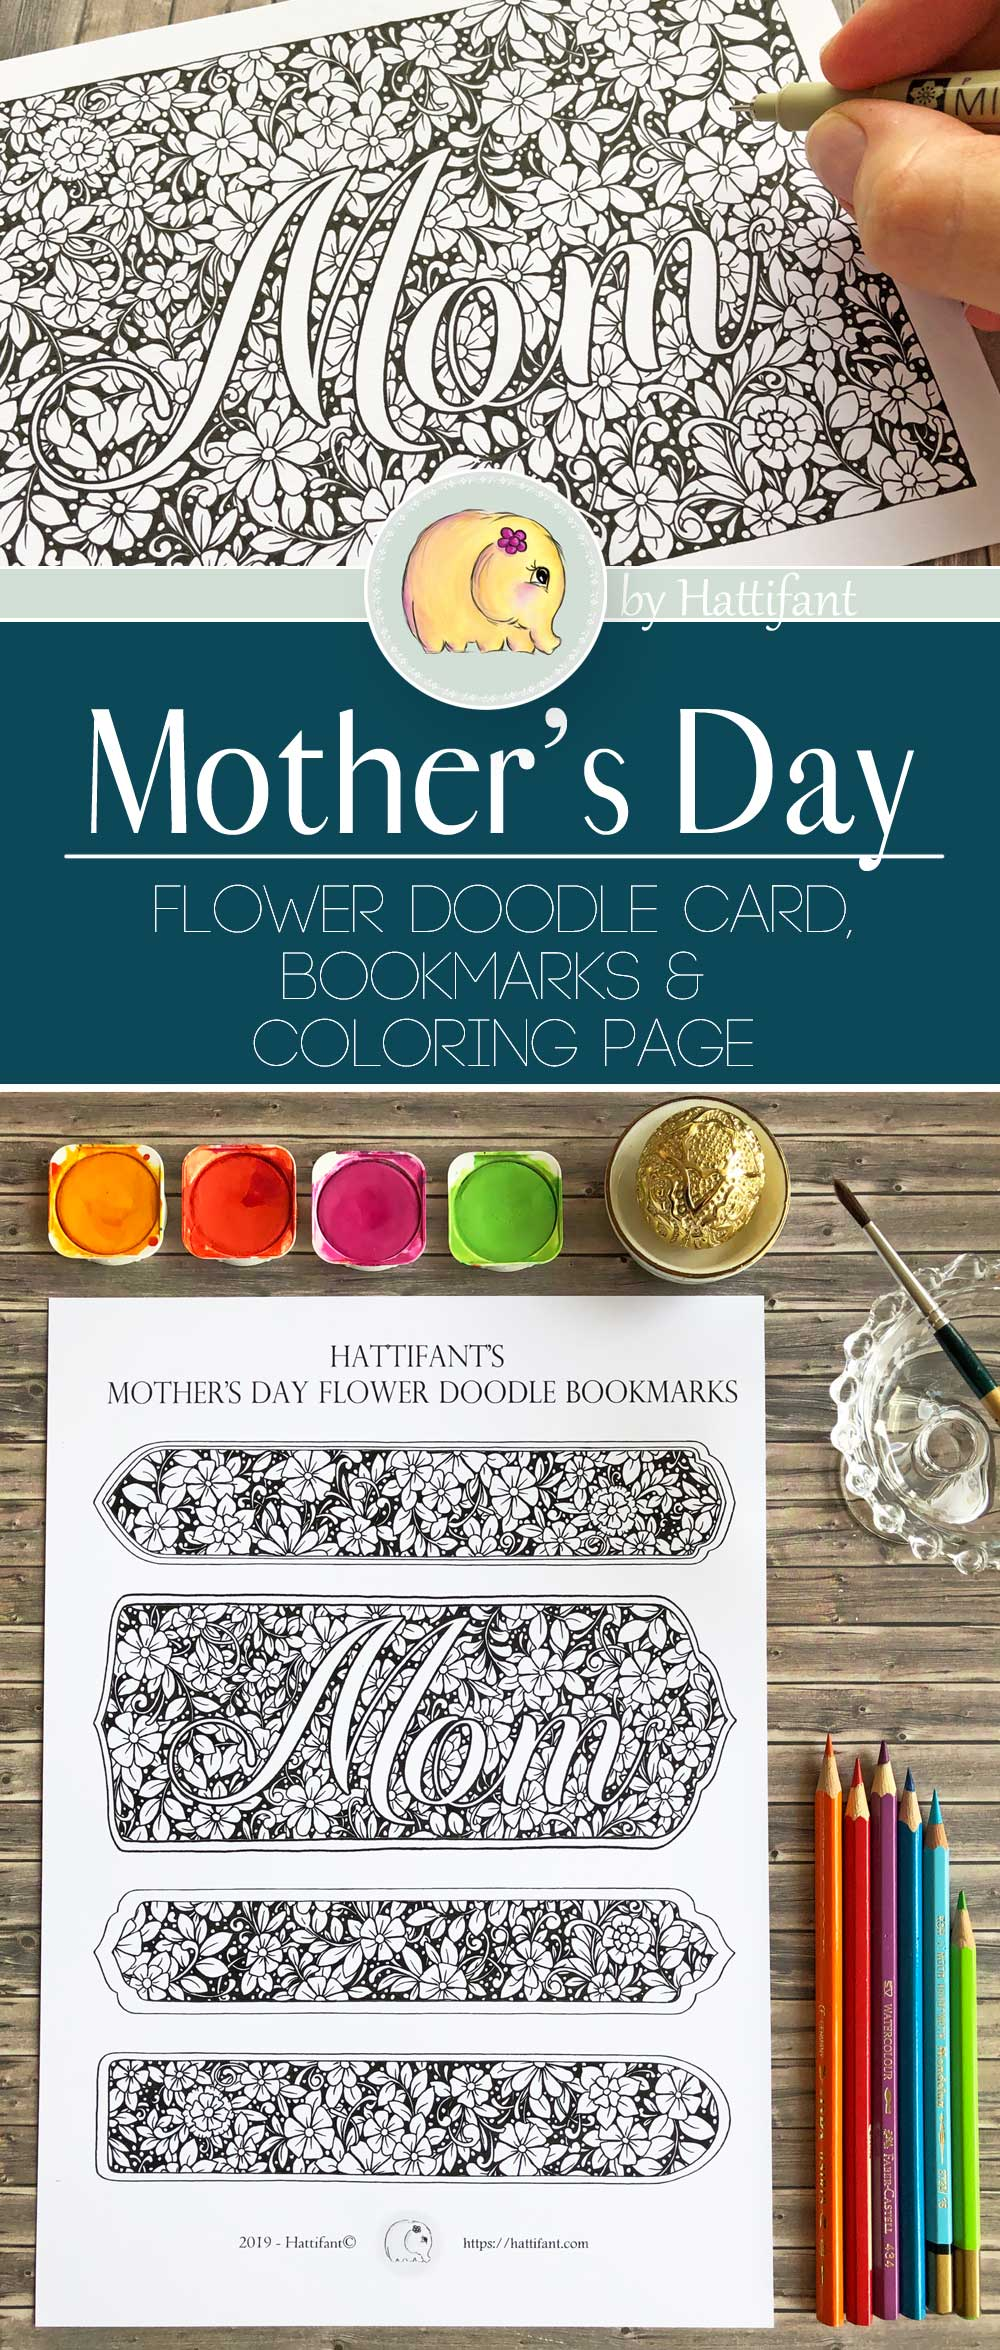 Hattifant's Mother's Day Flower Doodle Card, Bookmarks and Coloring Page